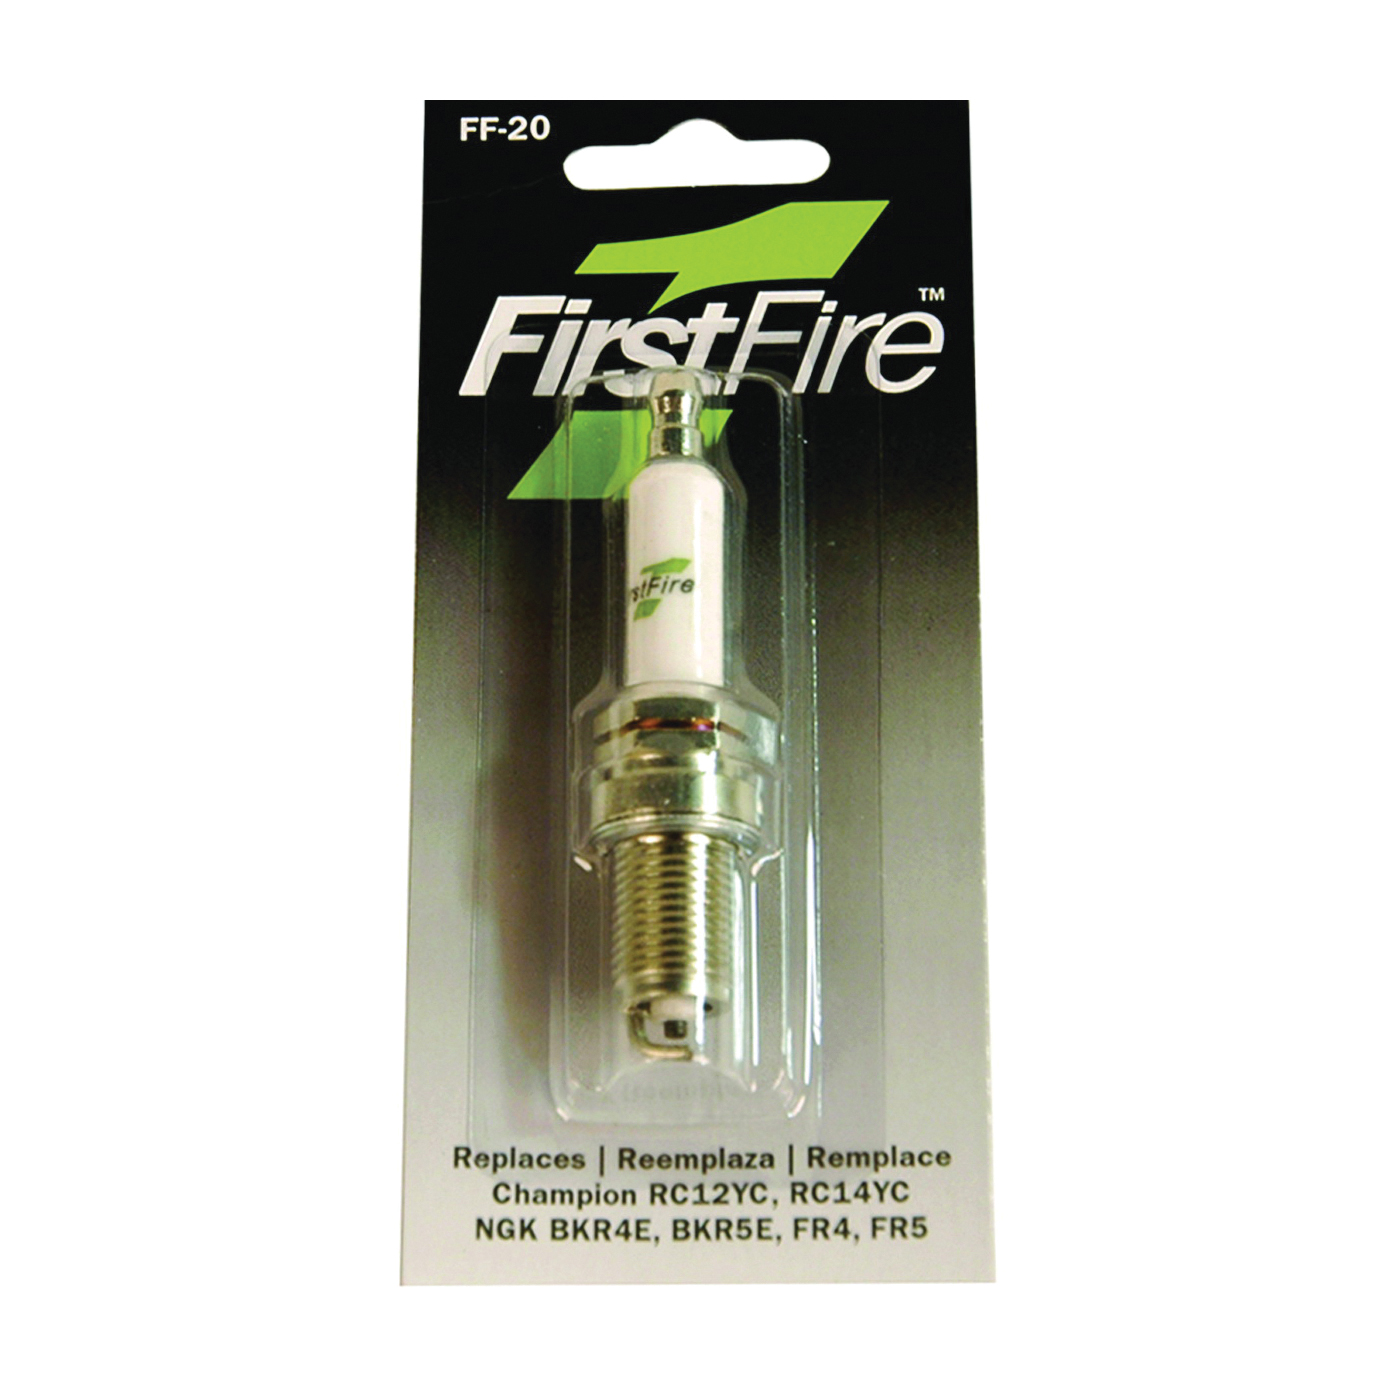 Picture of MTD FF-20 Spark Plug, 3/4 in Fill Gap, 0.551 in Thread, 5/8 in Hex